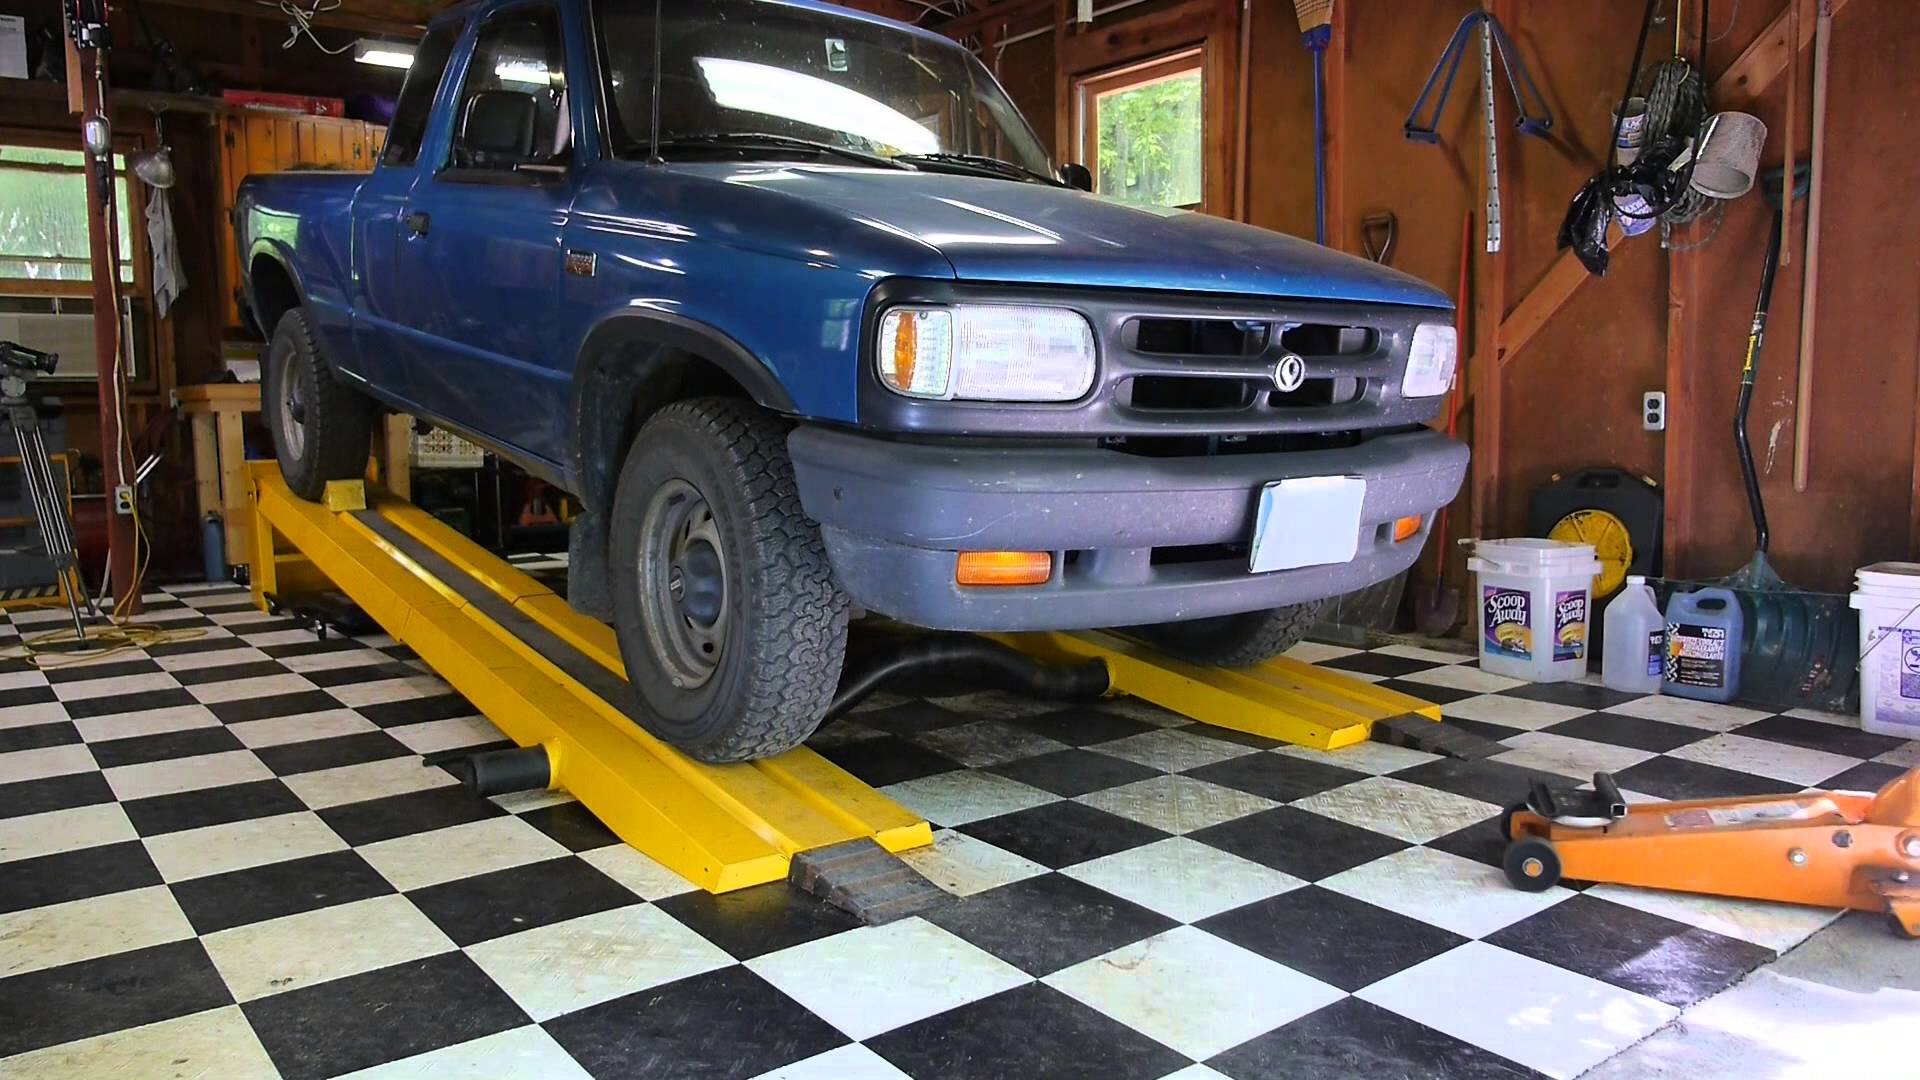 Used Car Lifts for Sale Craigslist Unique Using the Kwik Lift Car Ramp Youtube